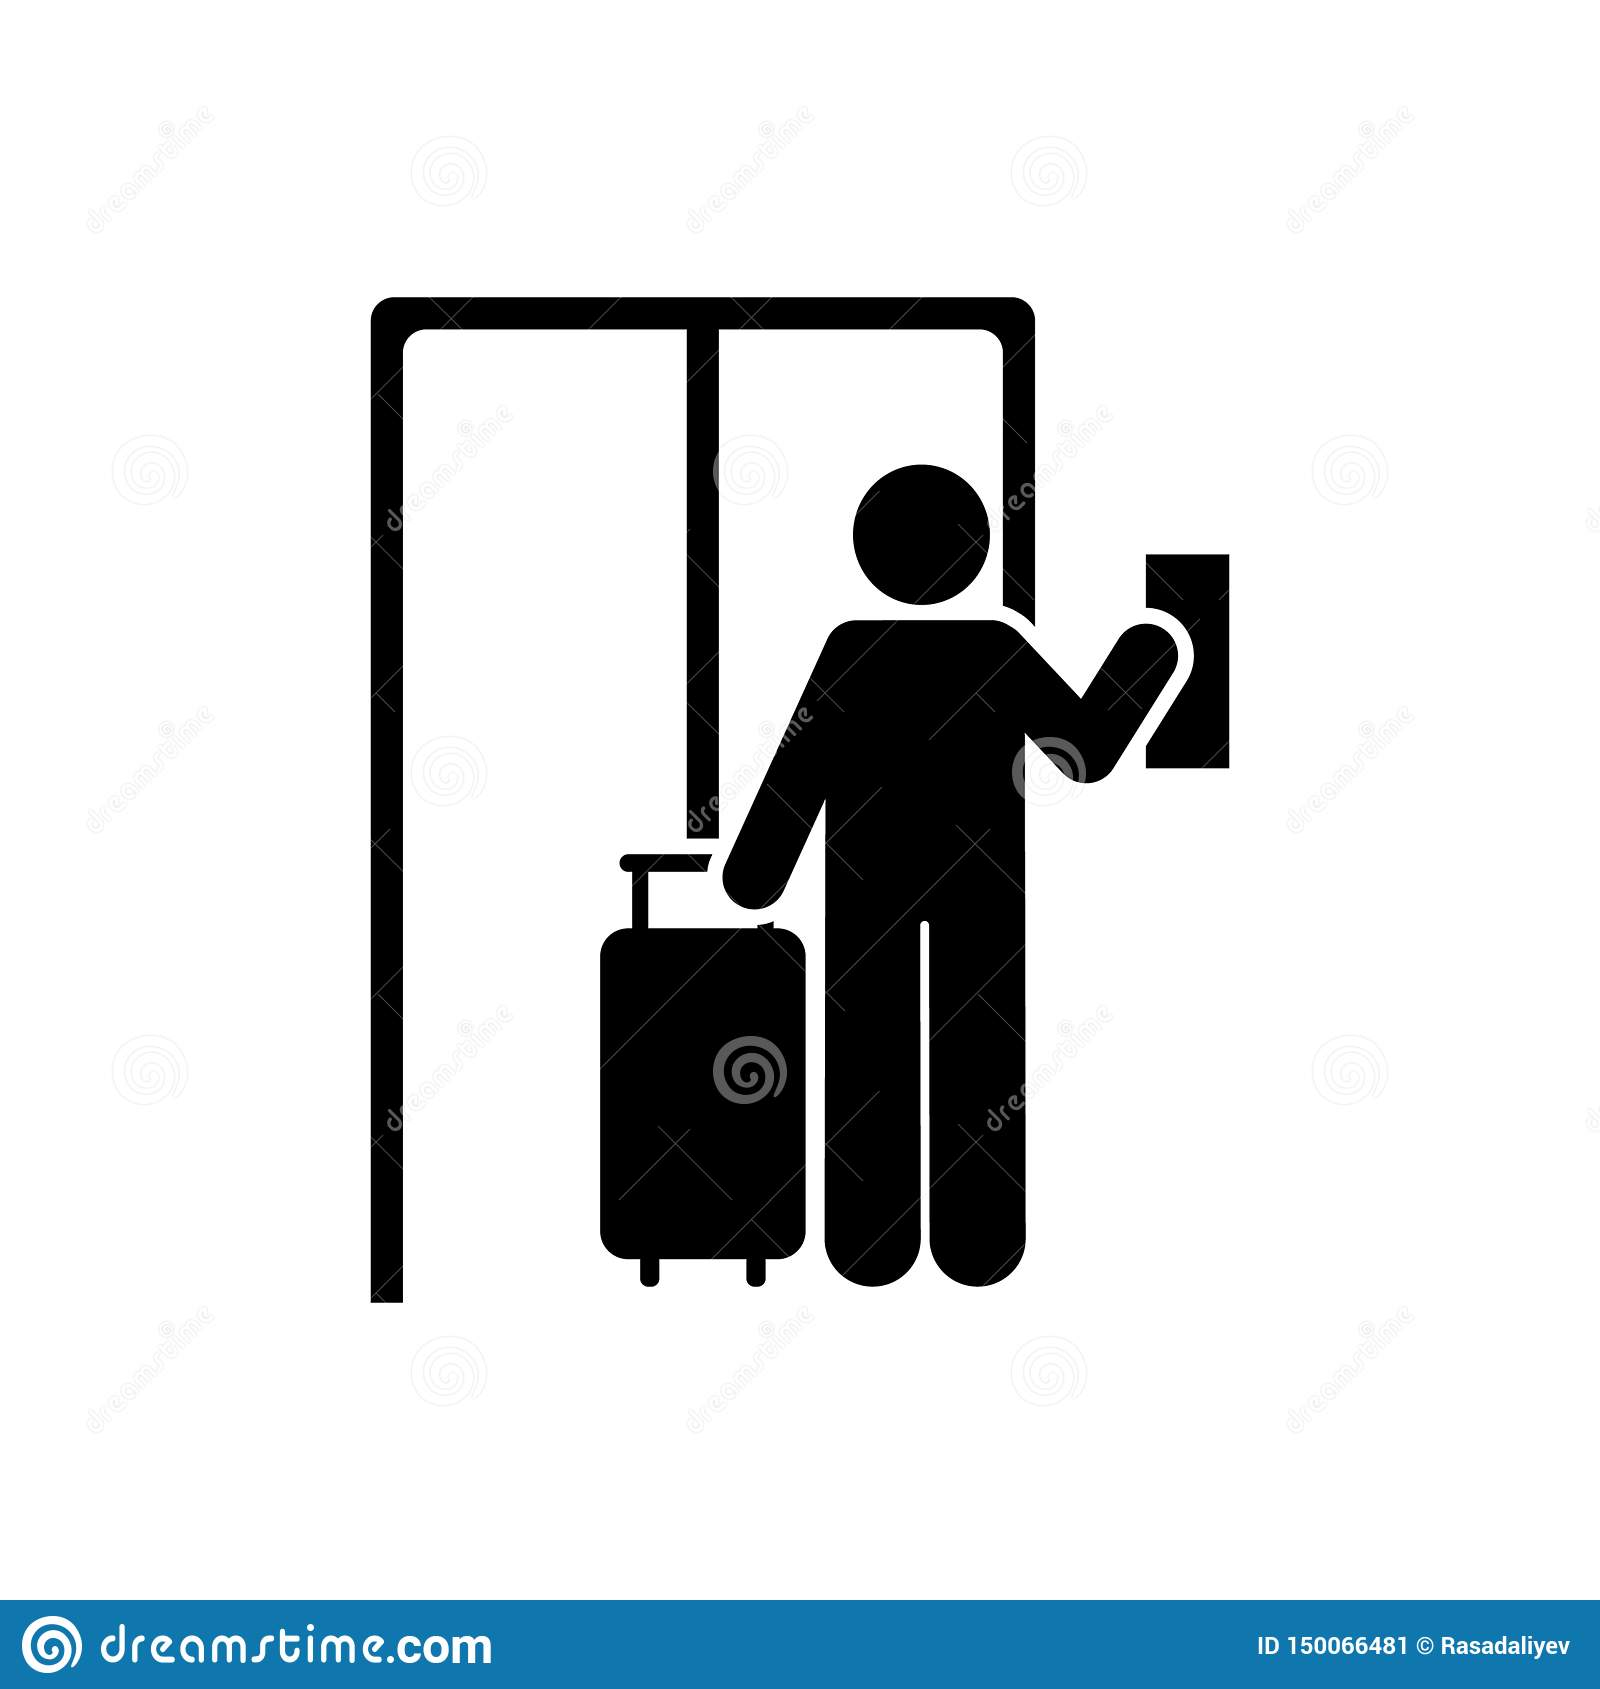 Hotel, man, travel icon. Element of hotel pictogram icon. Premium quality graphic design icon. Signs and symbols collection icon